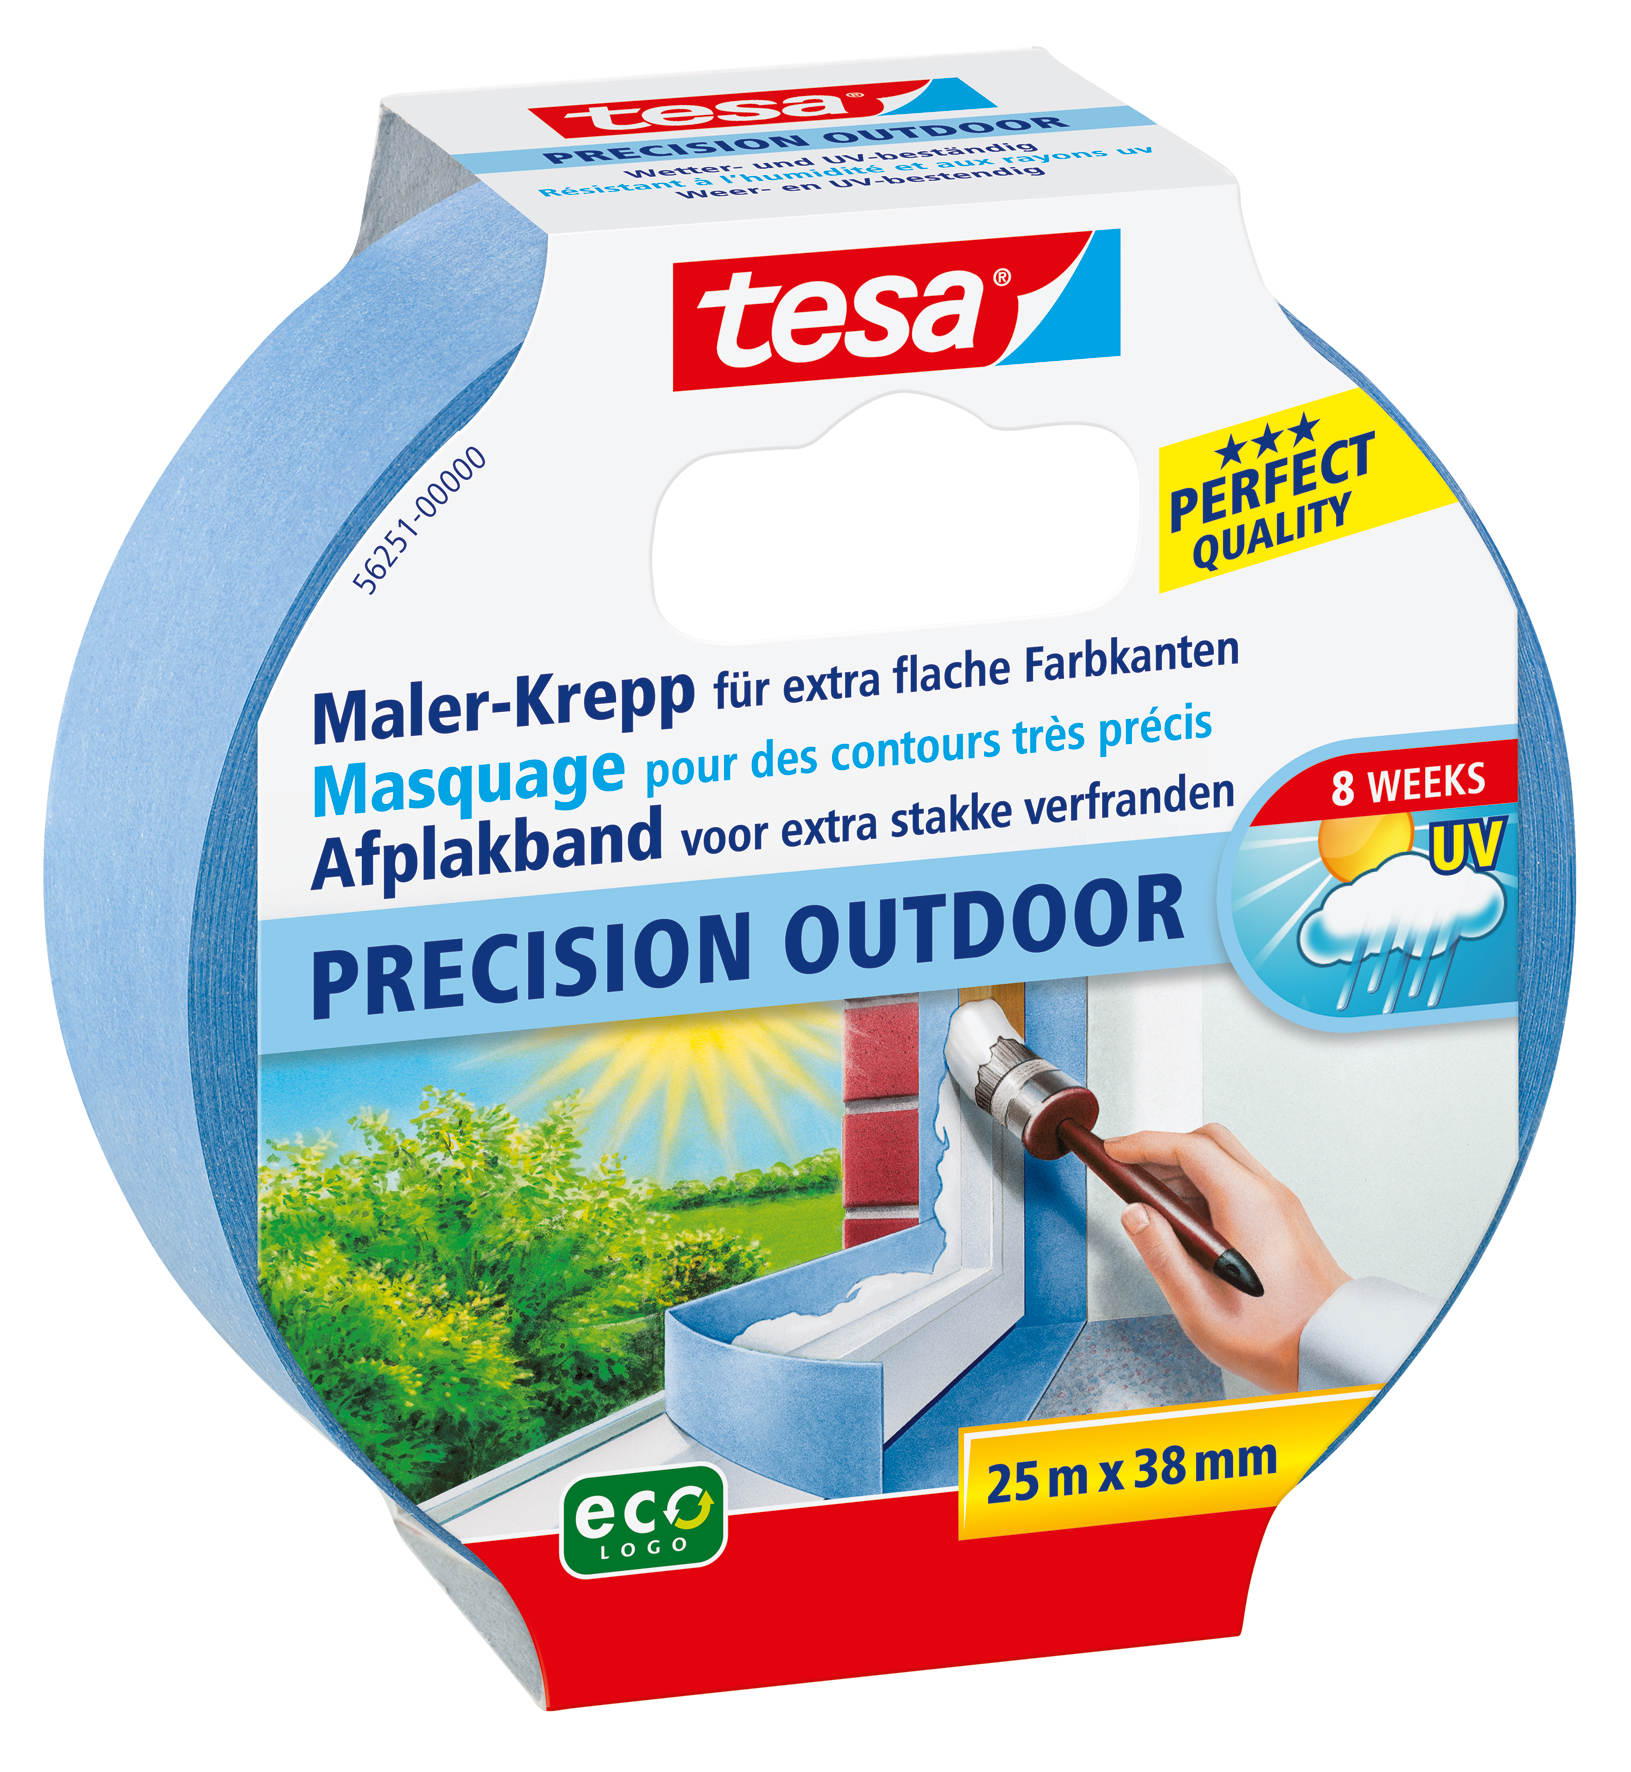 GP: 0,20 EUR/m 4 x tesa Maler-Krepp Precision Outdoor 25 m x 38 mm